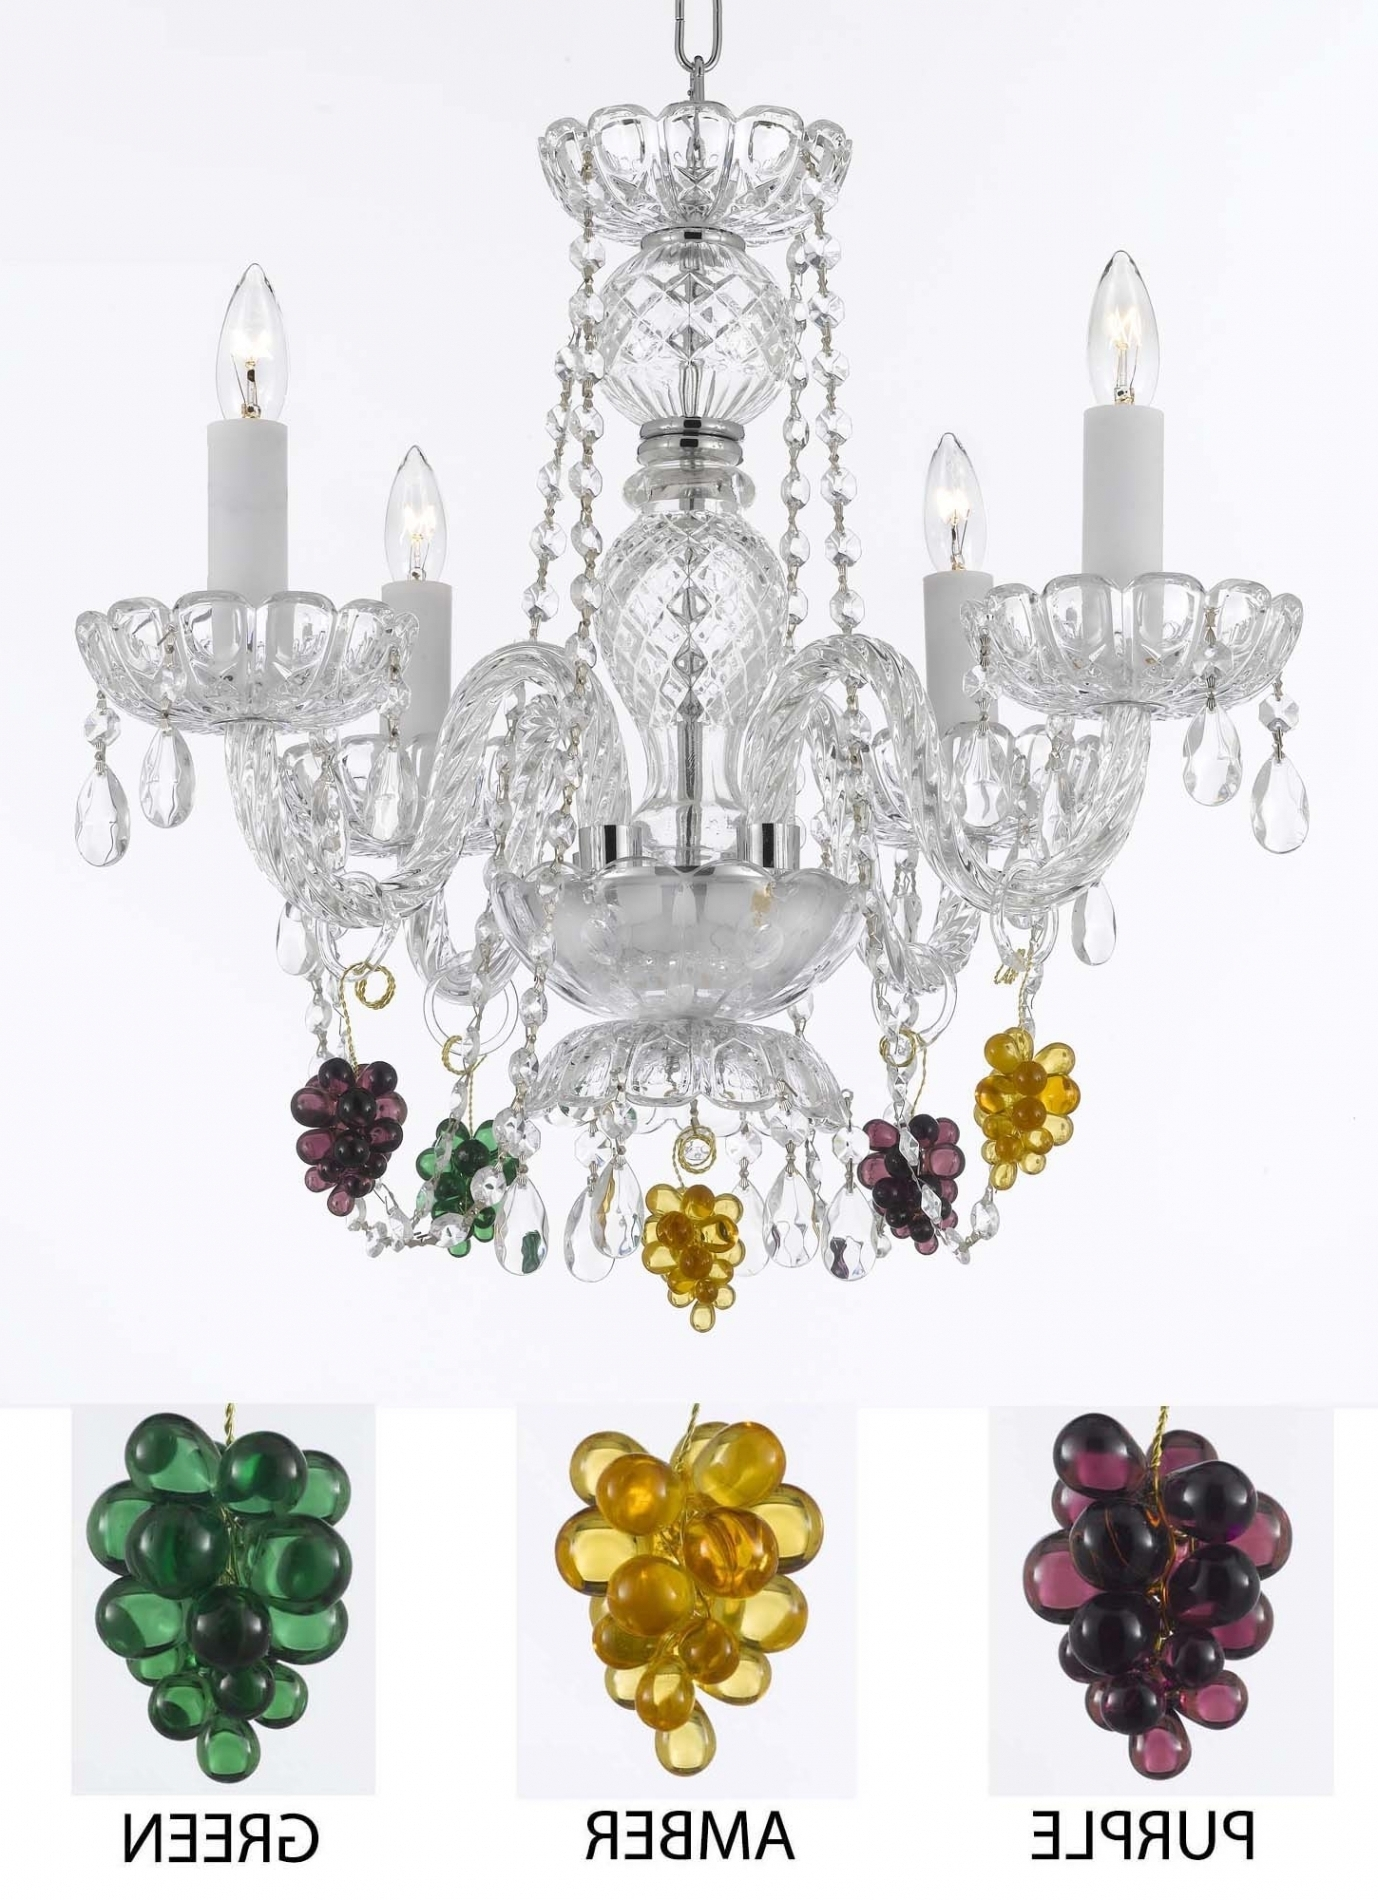 2018 20 Photo Of Murano Chandelier Replica With Regard To Murano Chandelier Replica (View 6 of 15)